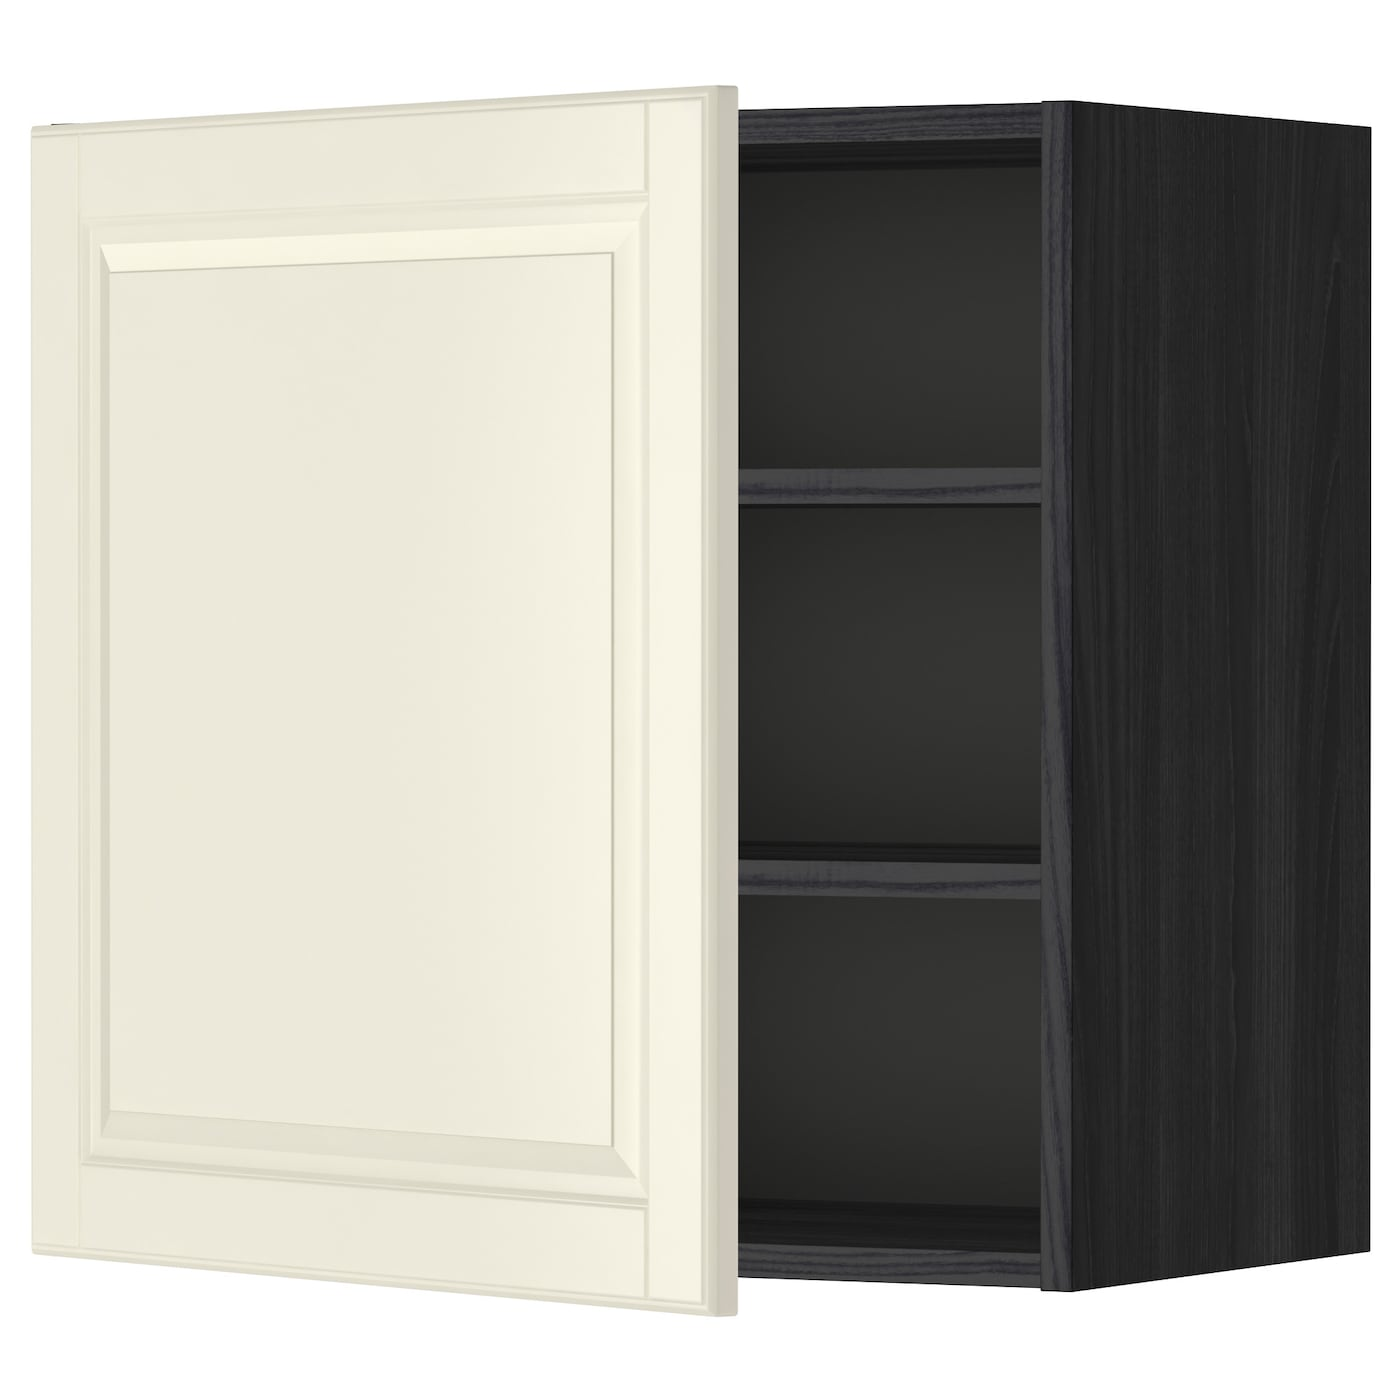 Metod Wall Cabinet With Shelves Black Bodbyn Off White